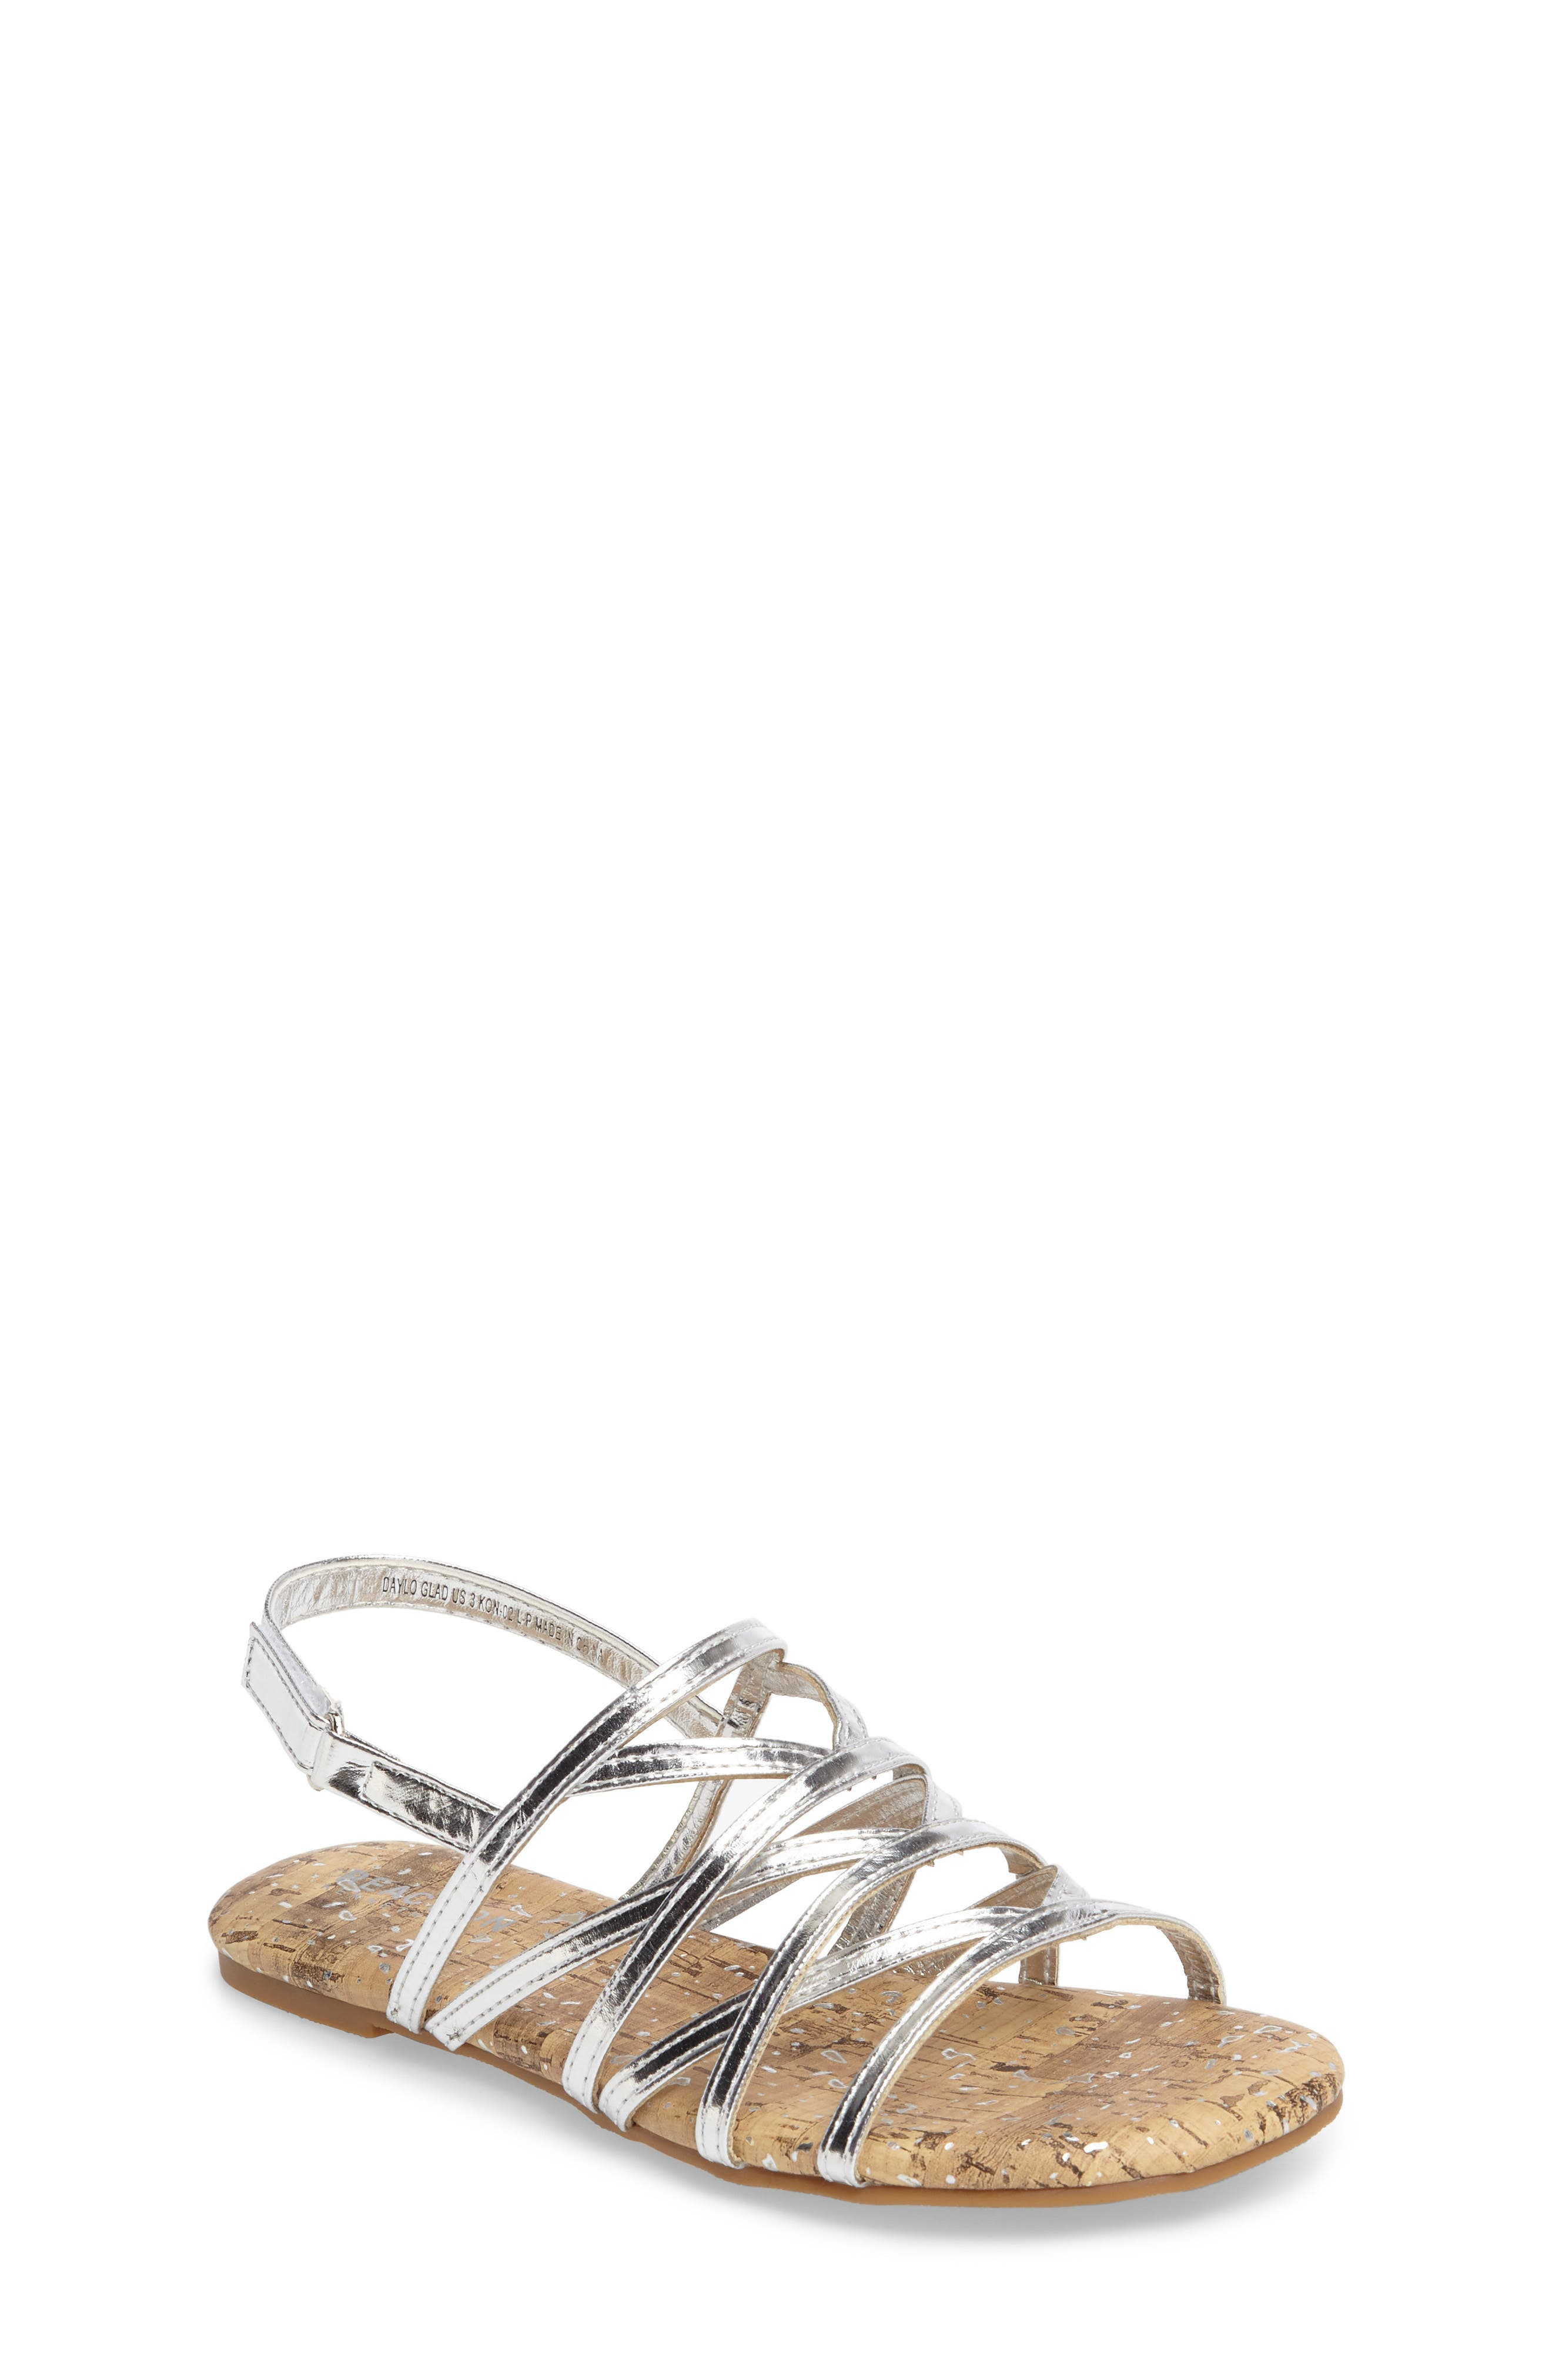 Daylo Glad Strappy Sandal,                         Main,                         color, Silver Faux Leather